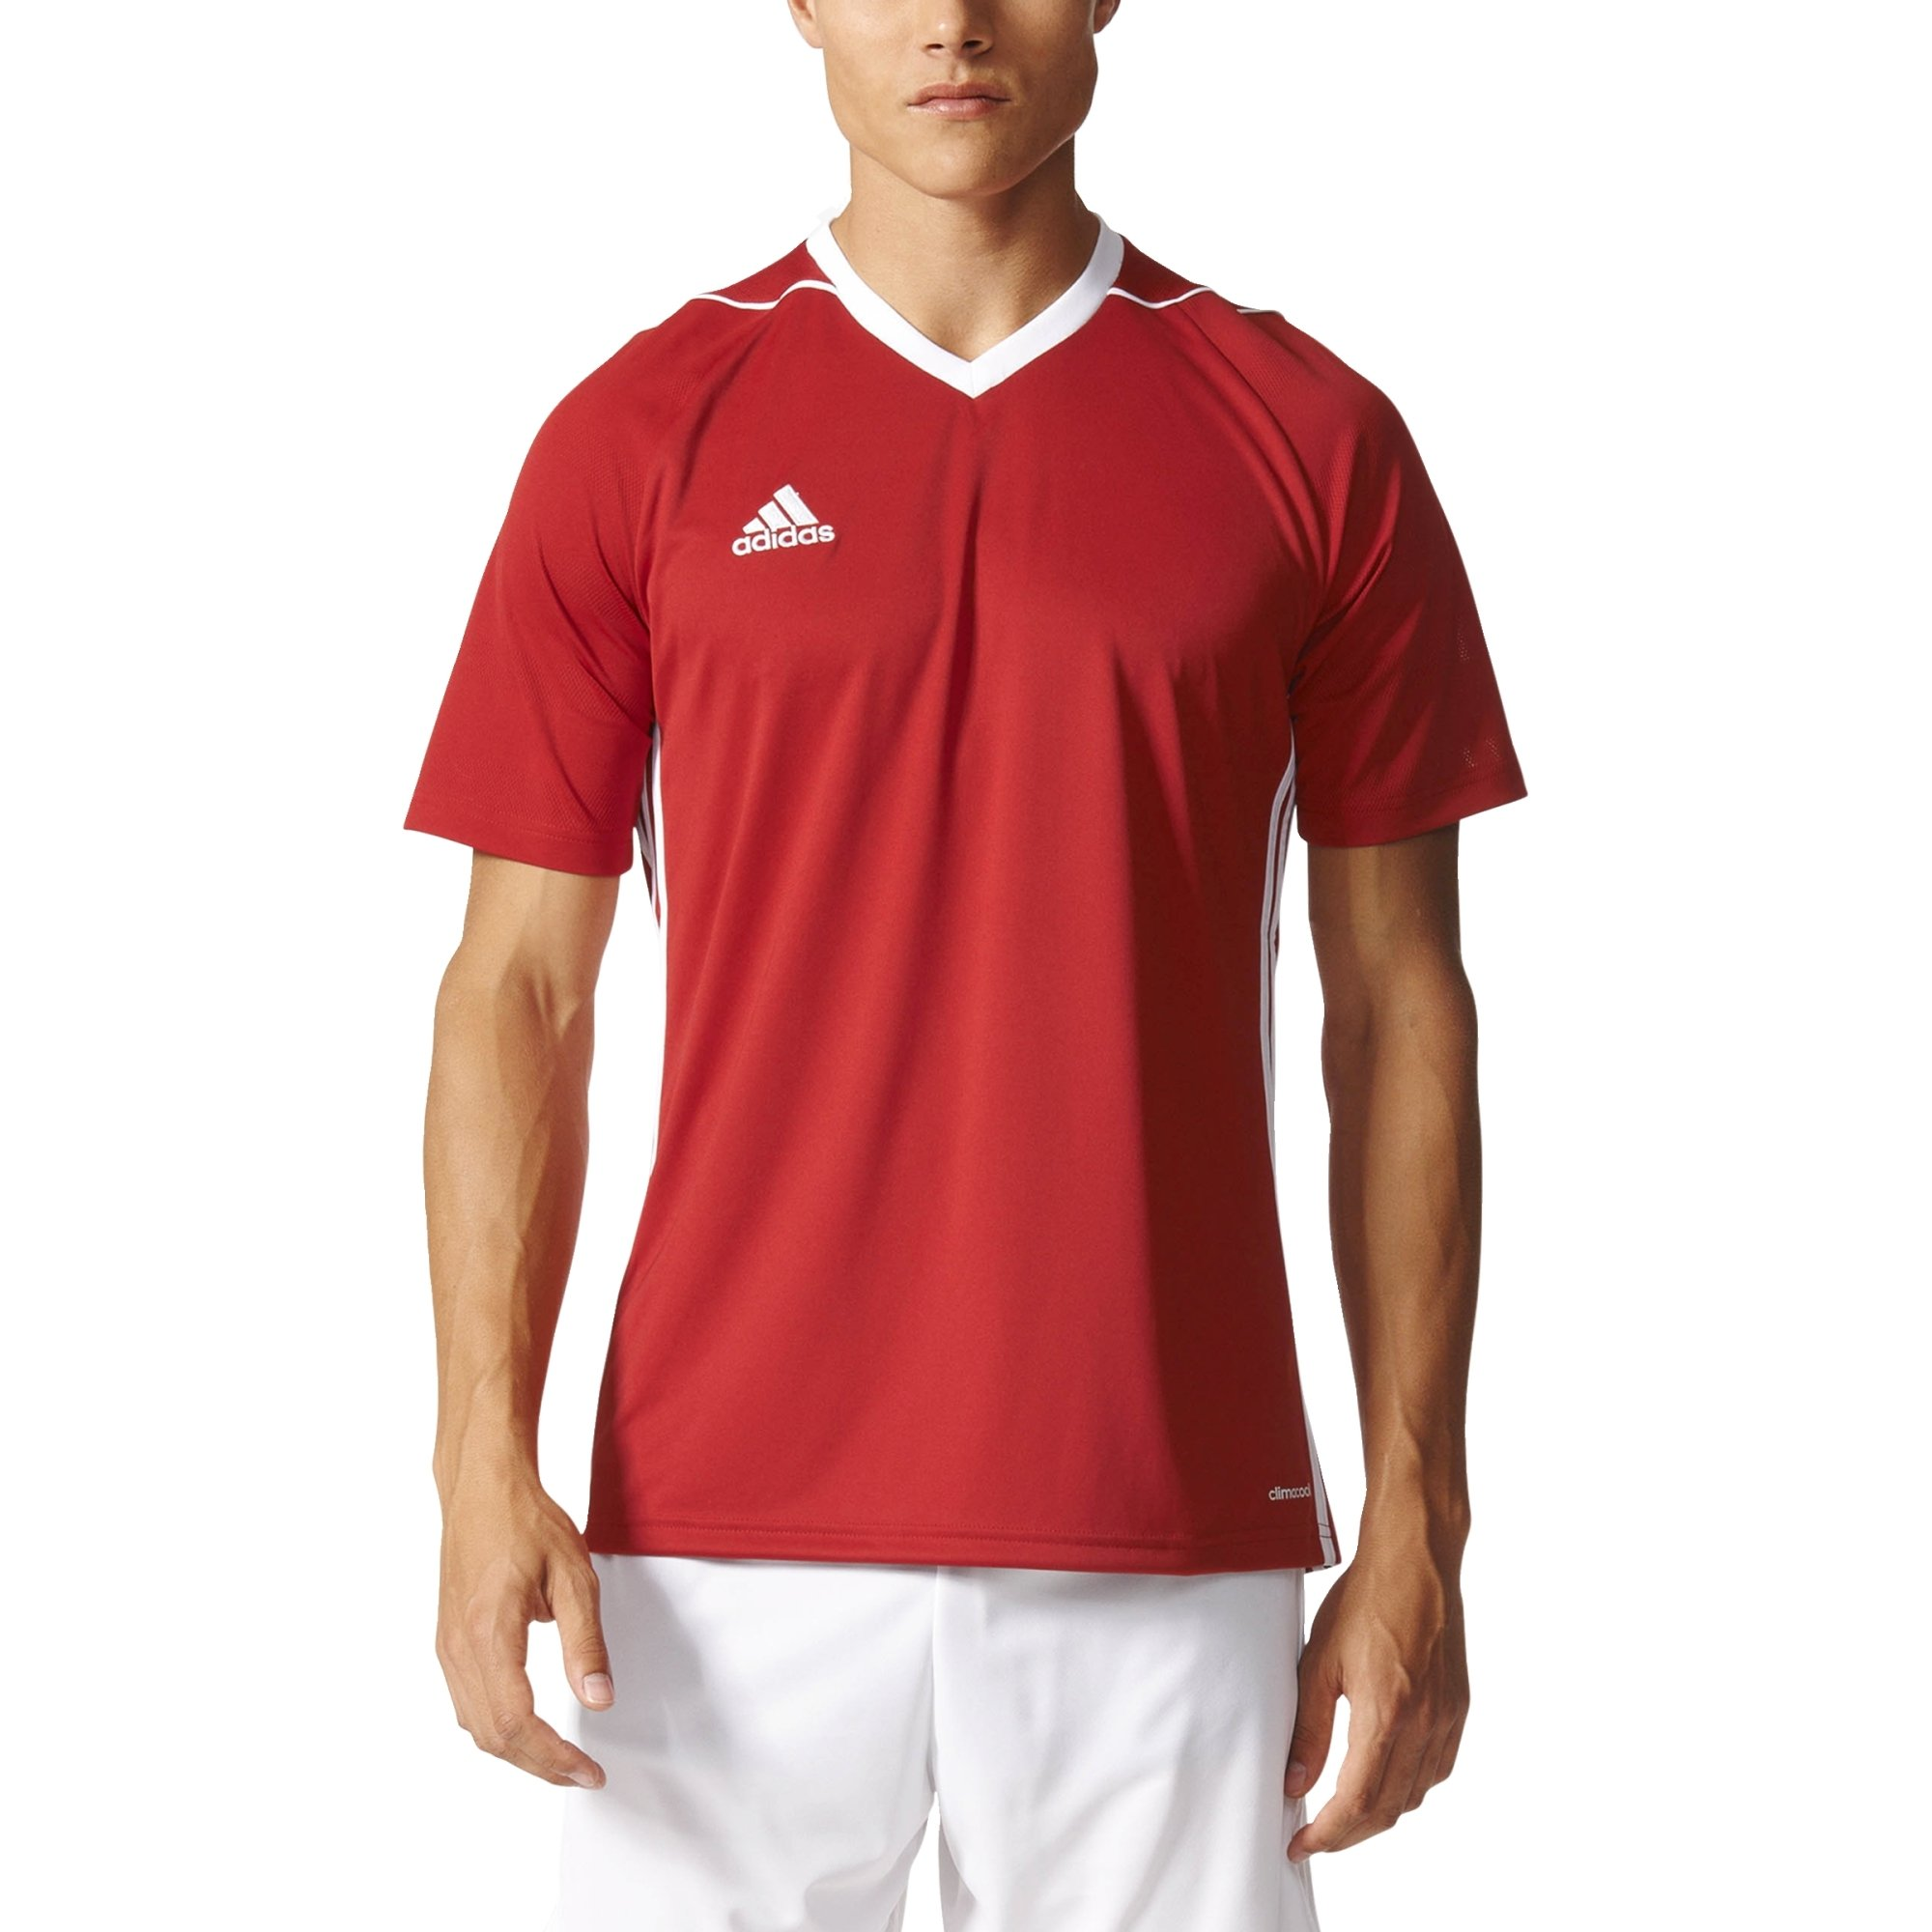 adidas Tiro 17 Mens Soccer Jersey M Power Red-White by adidas